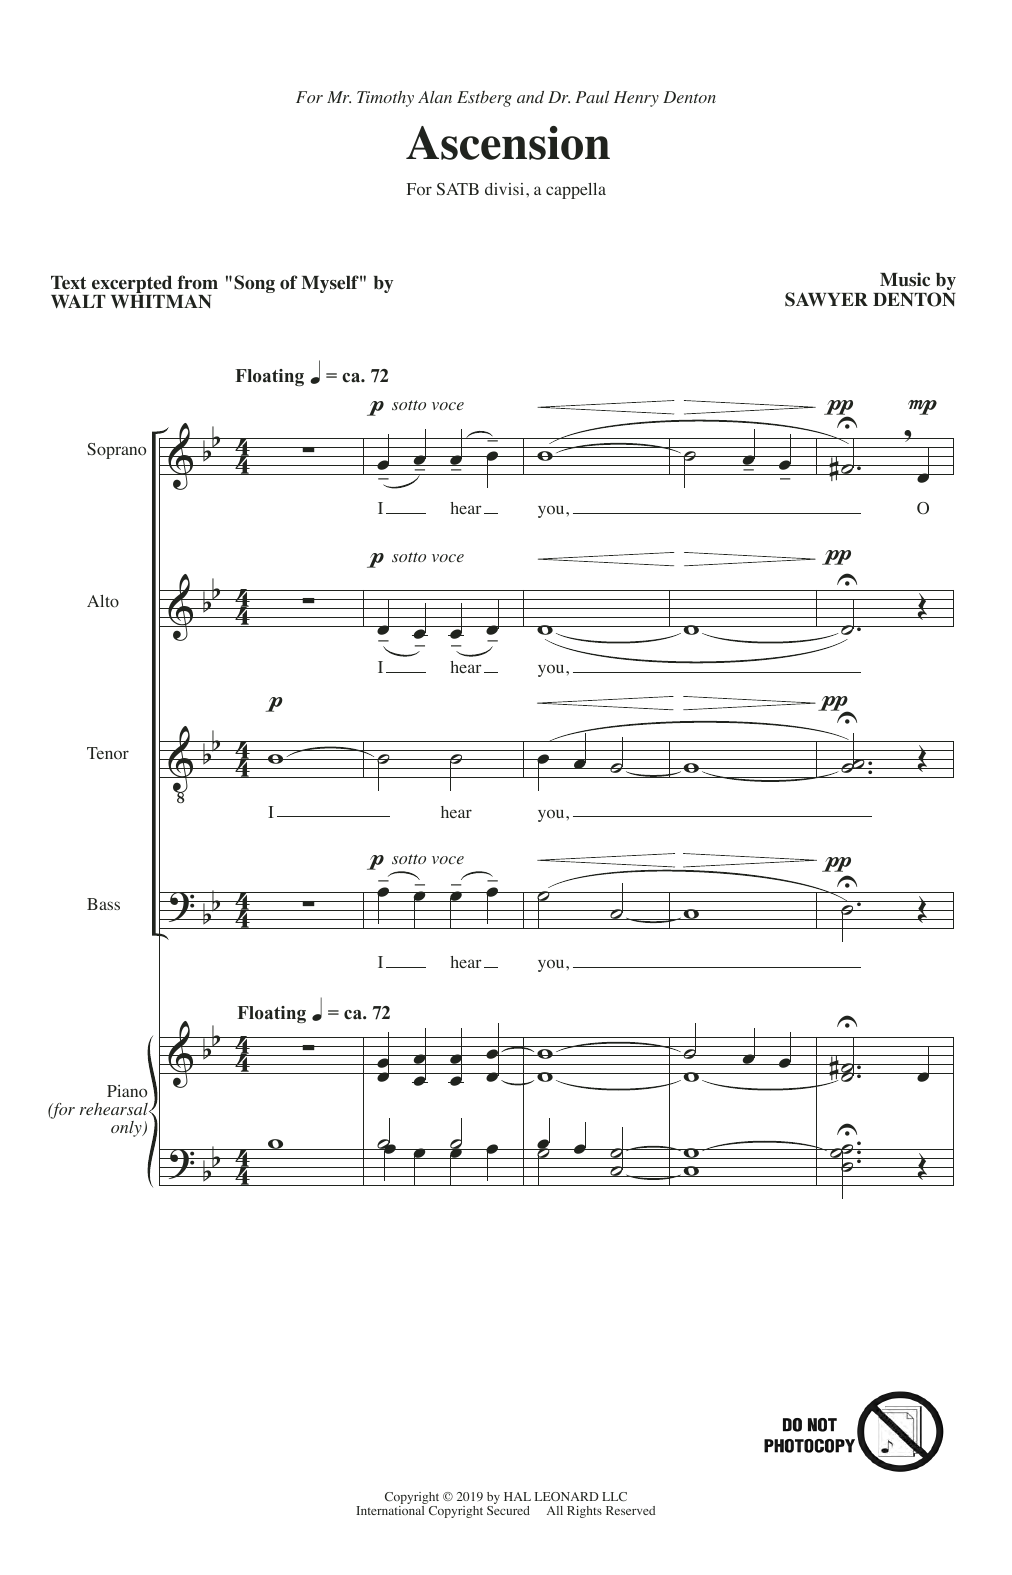 Ascension (SATB Choir)